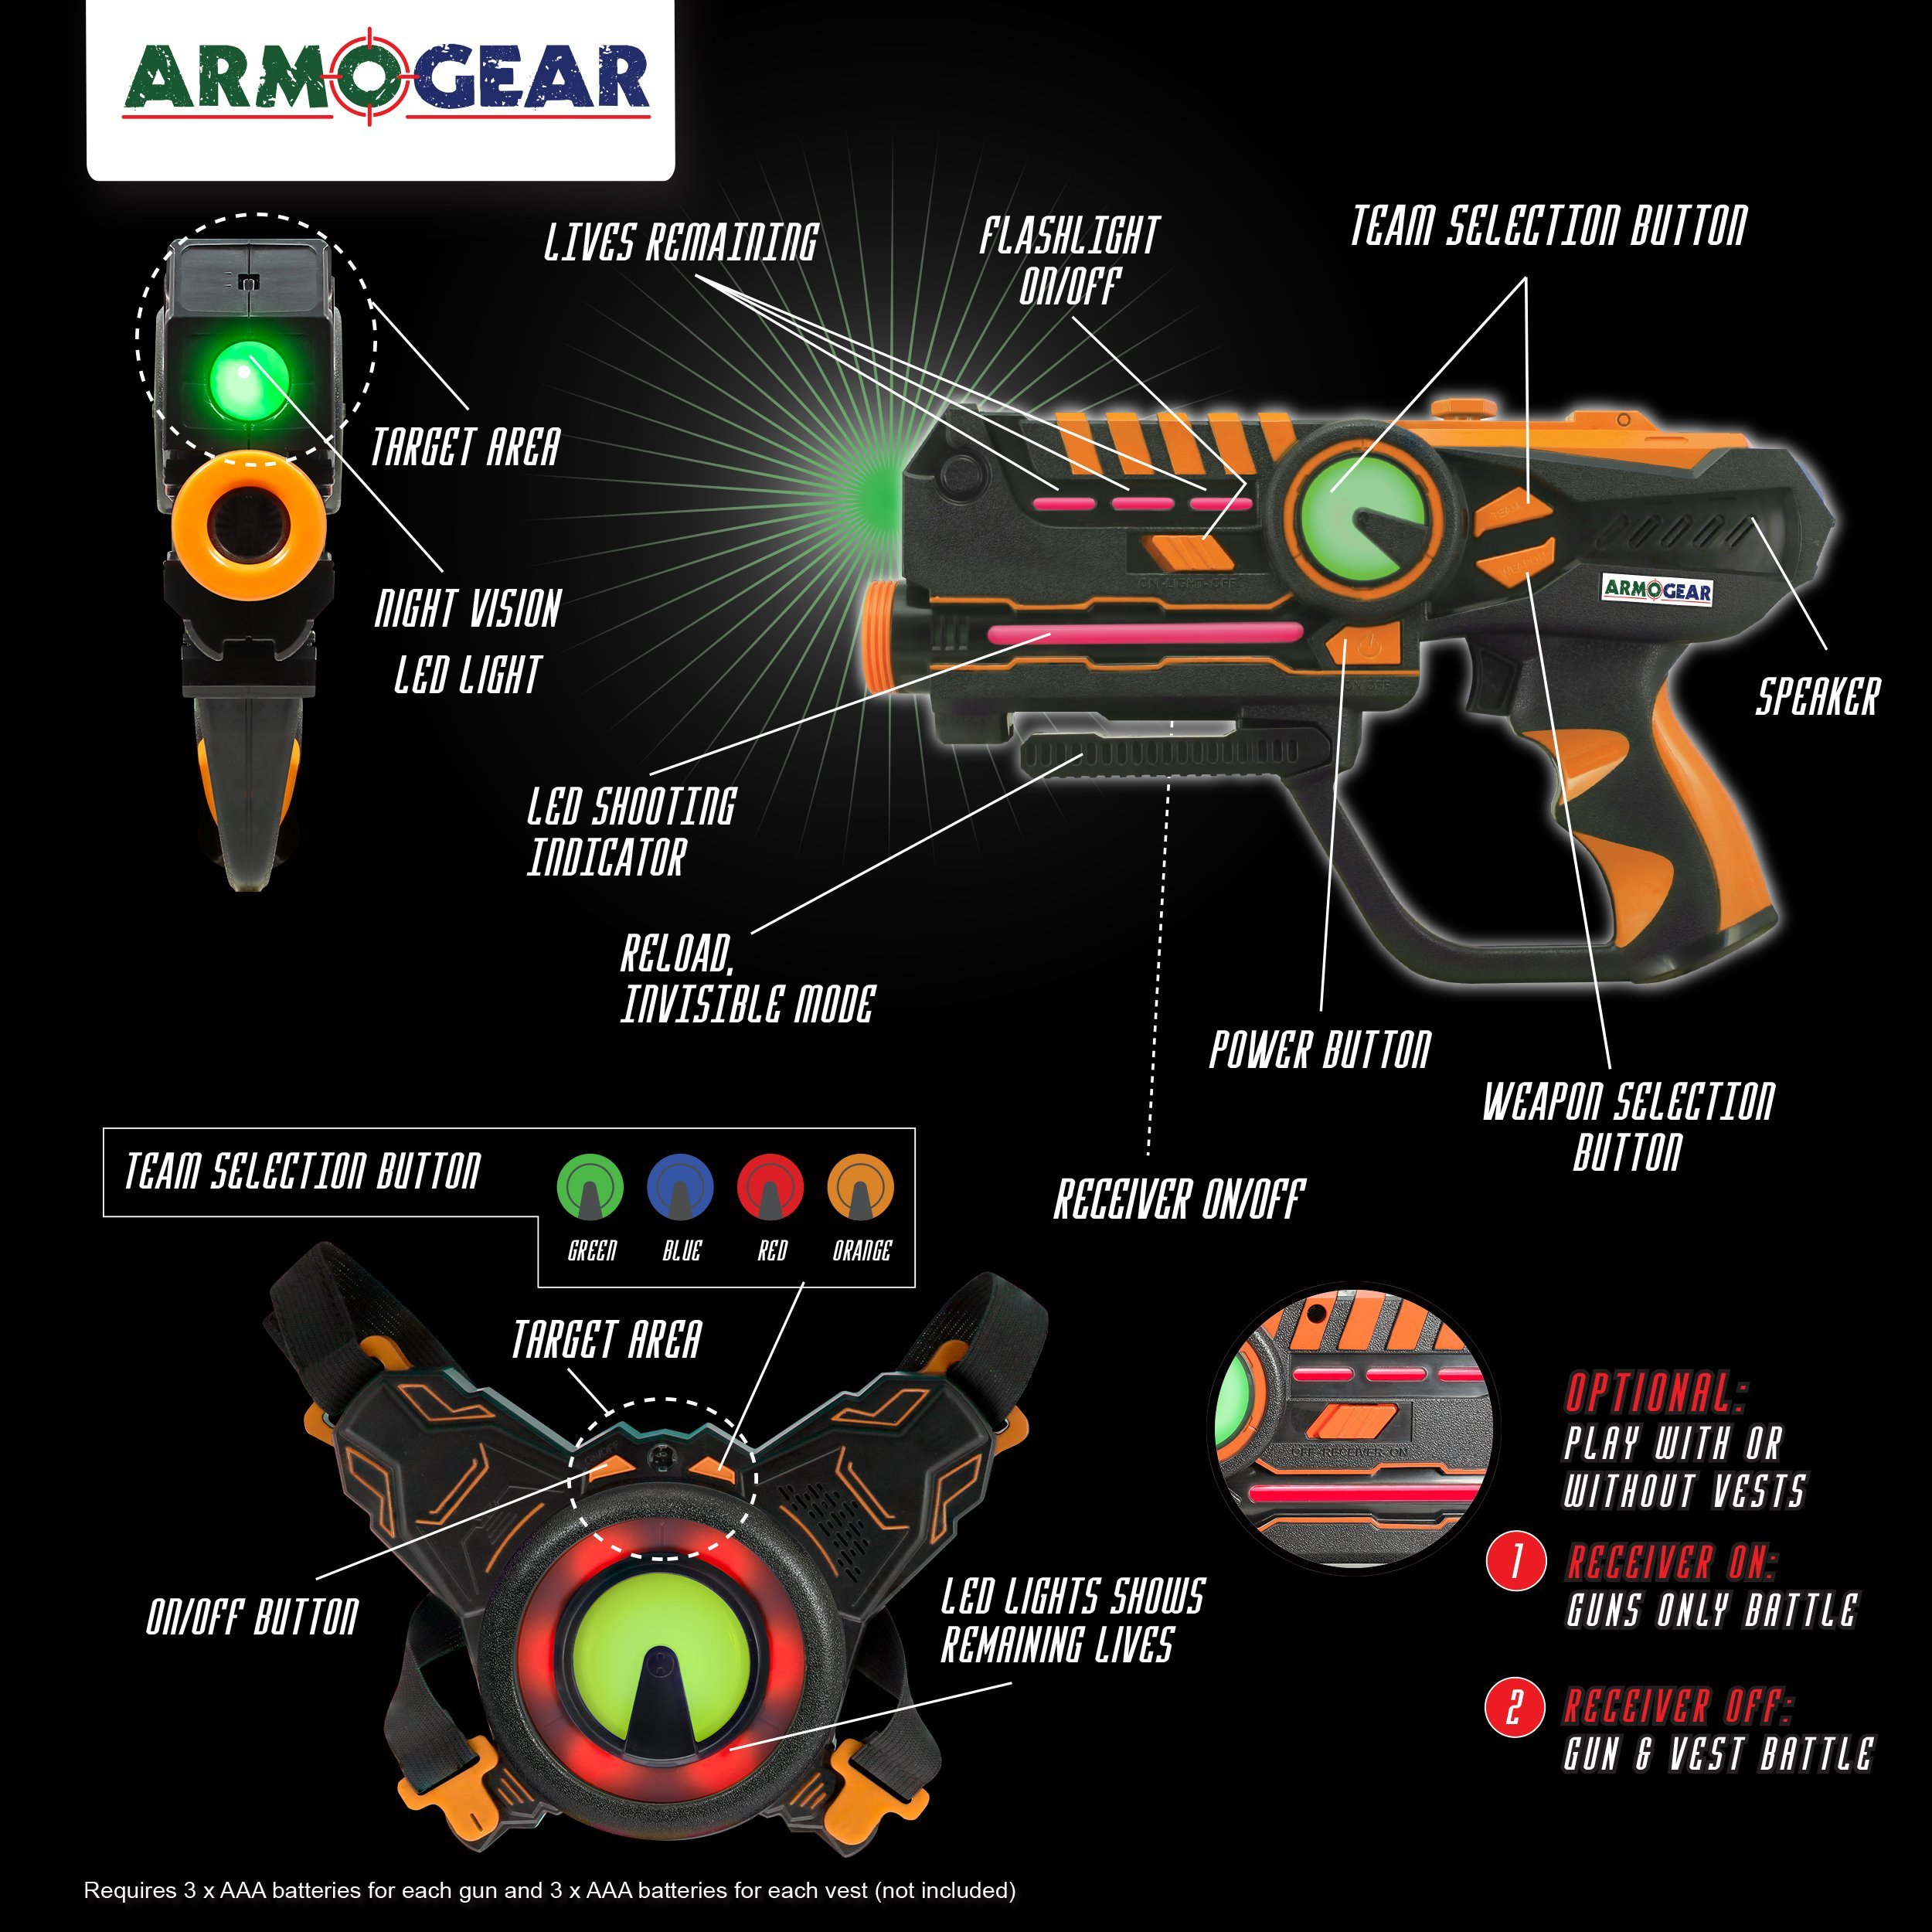 ArmoGear Infrared Laser Tag Guns and Vests - Laser Battle Game Pack Set of 2 in Gift Box Packaging - Infrared 0.9mW by ArmoGear (Image #4)